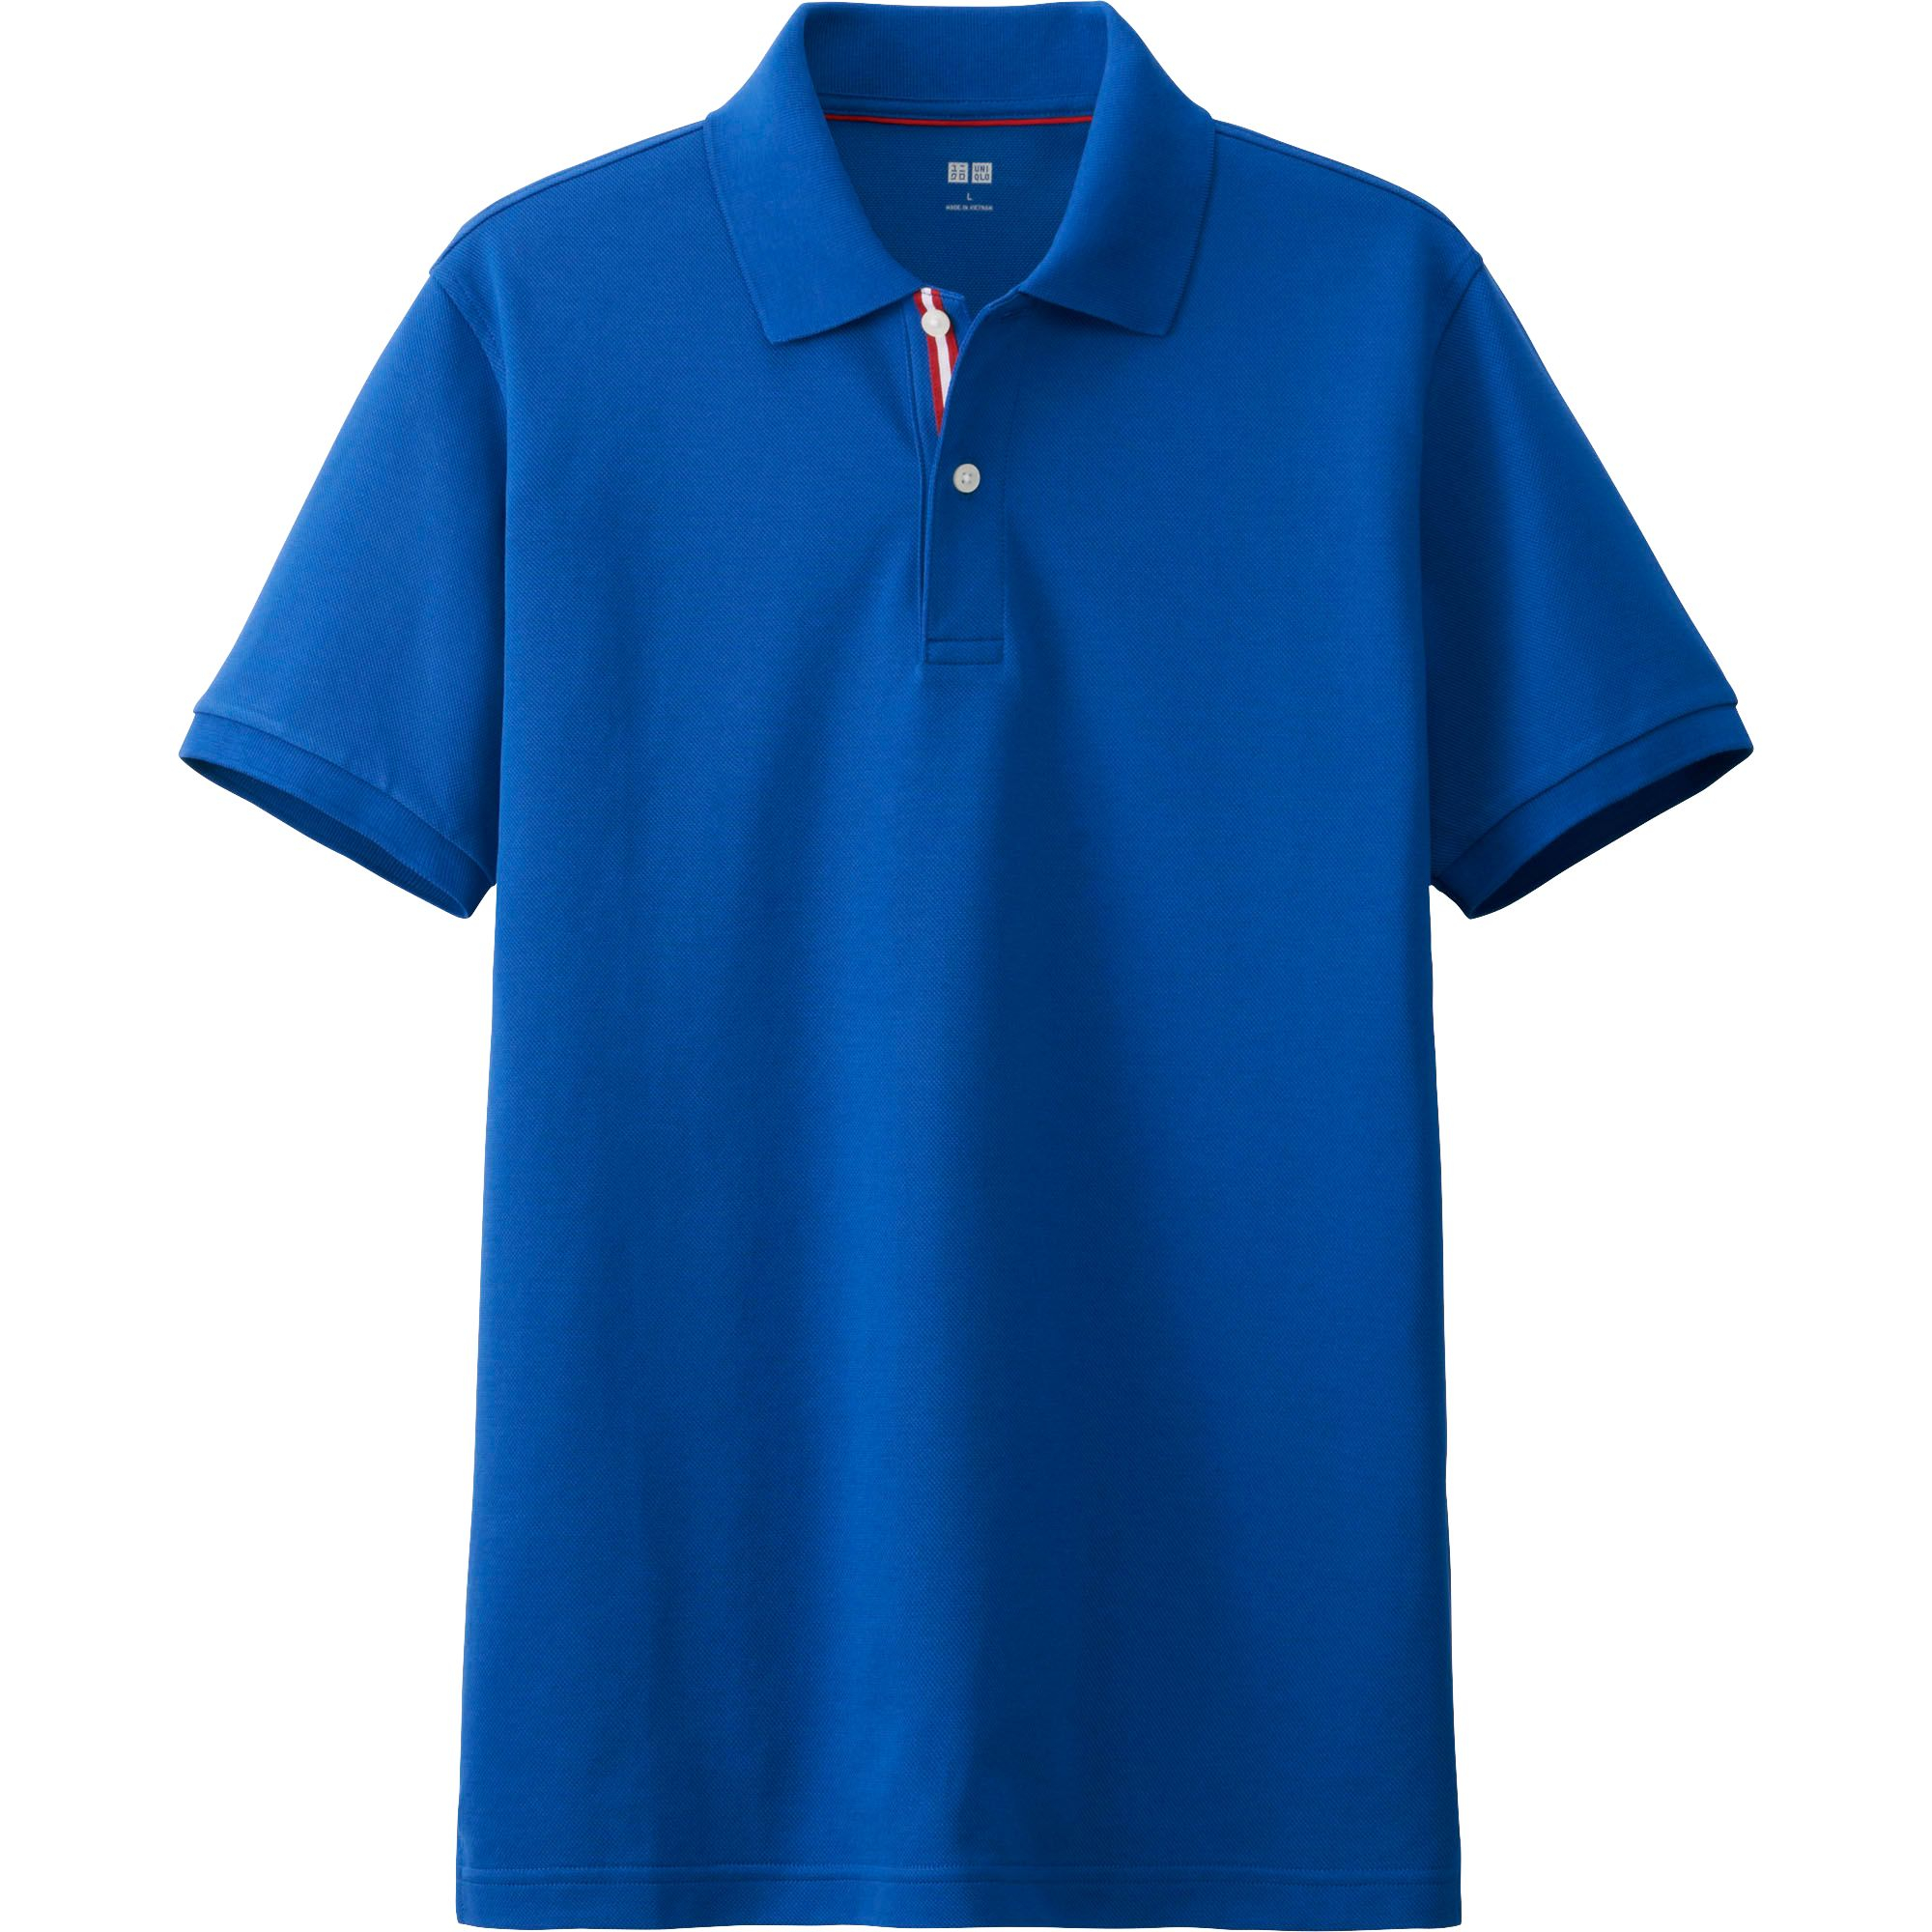 Uniqlo Dry Pique Line Short Sleeve Polo Shirt In Blue For